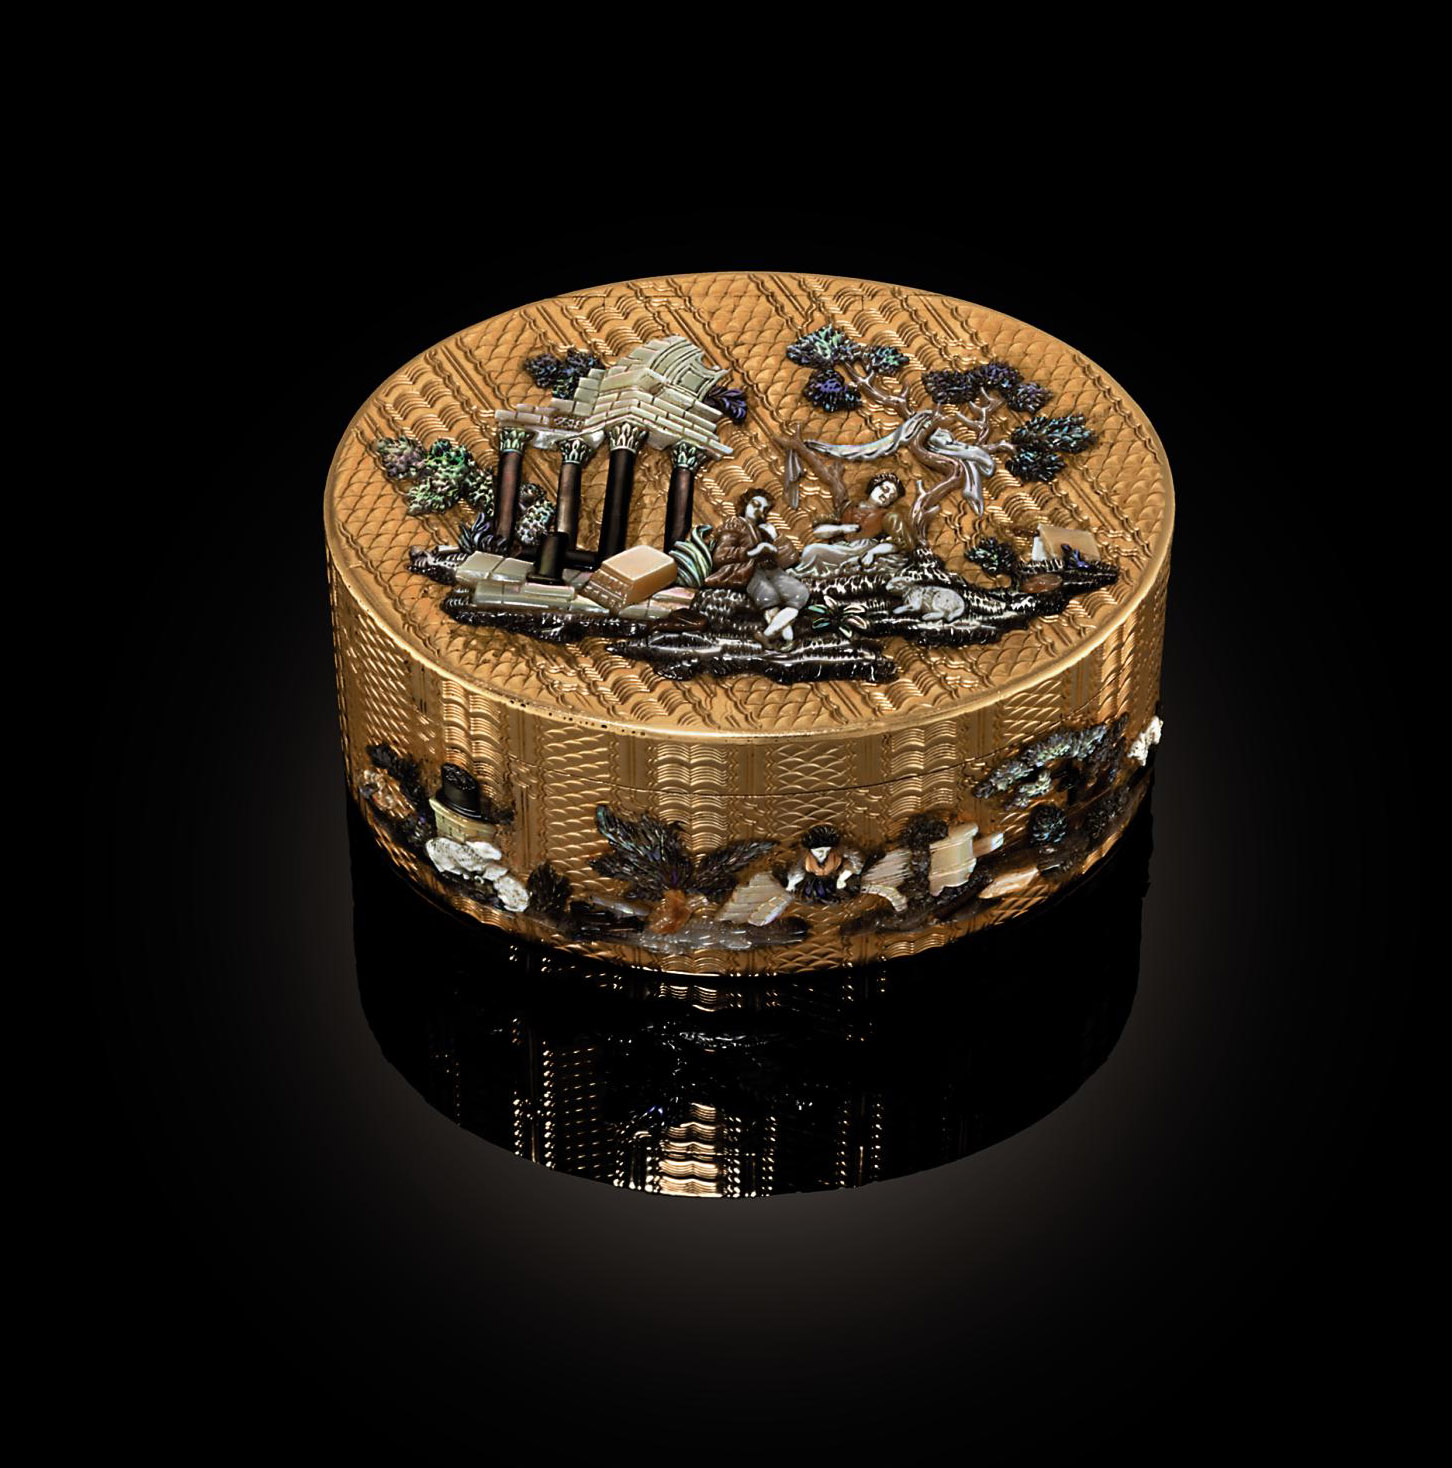 A LOUIS XV GOLD SNUFF-BOX APPLIED WITH SHELL, IVORY AND HARDSTONES